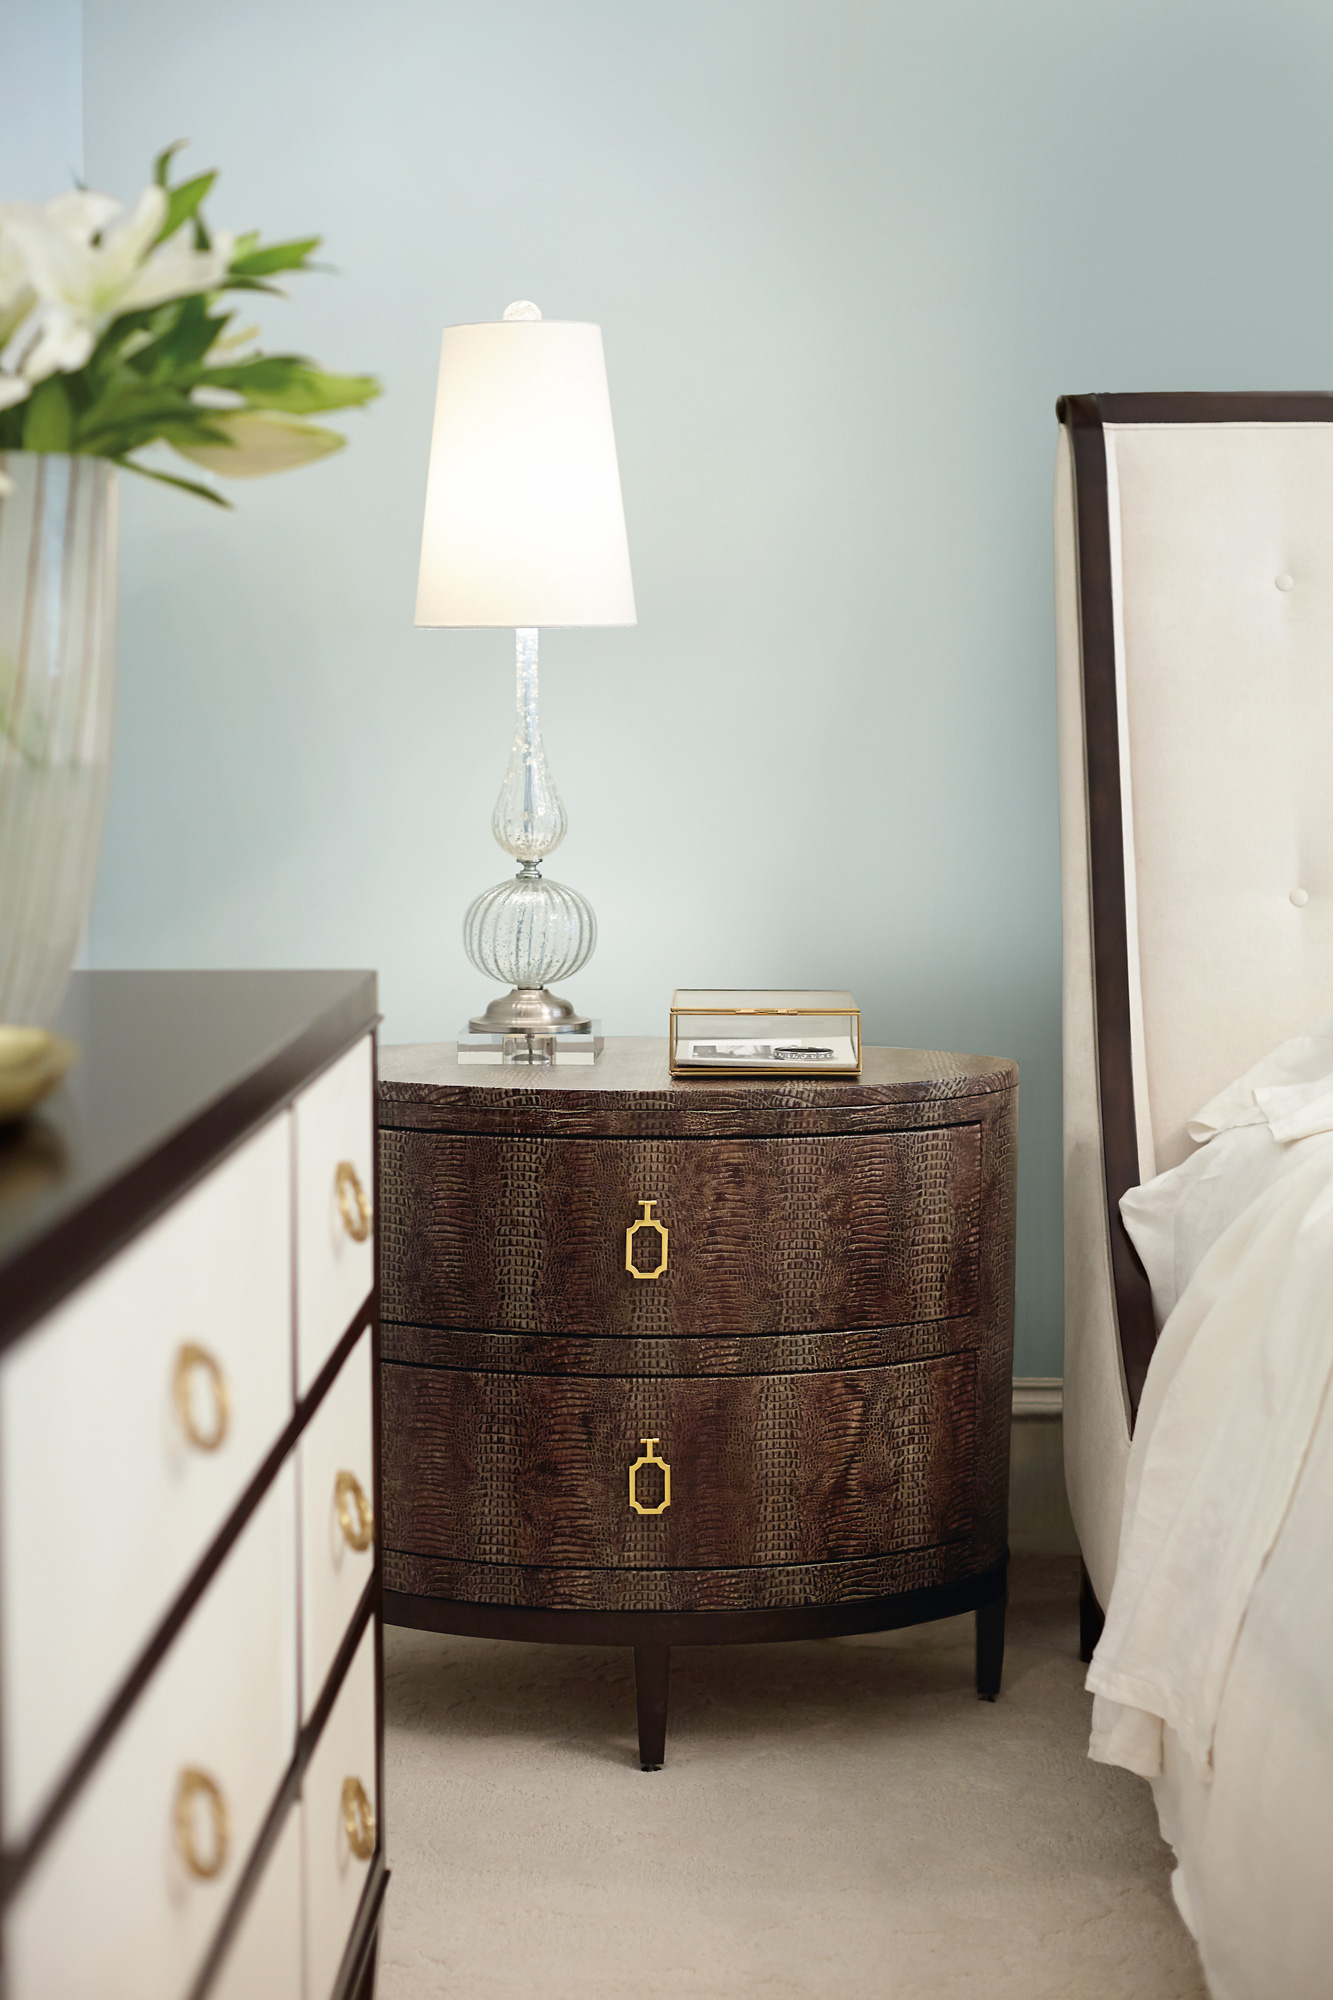 Jet Set Upholstered Bed And Oval Nightstand And Dresser Bernhardt